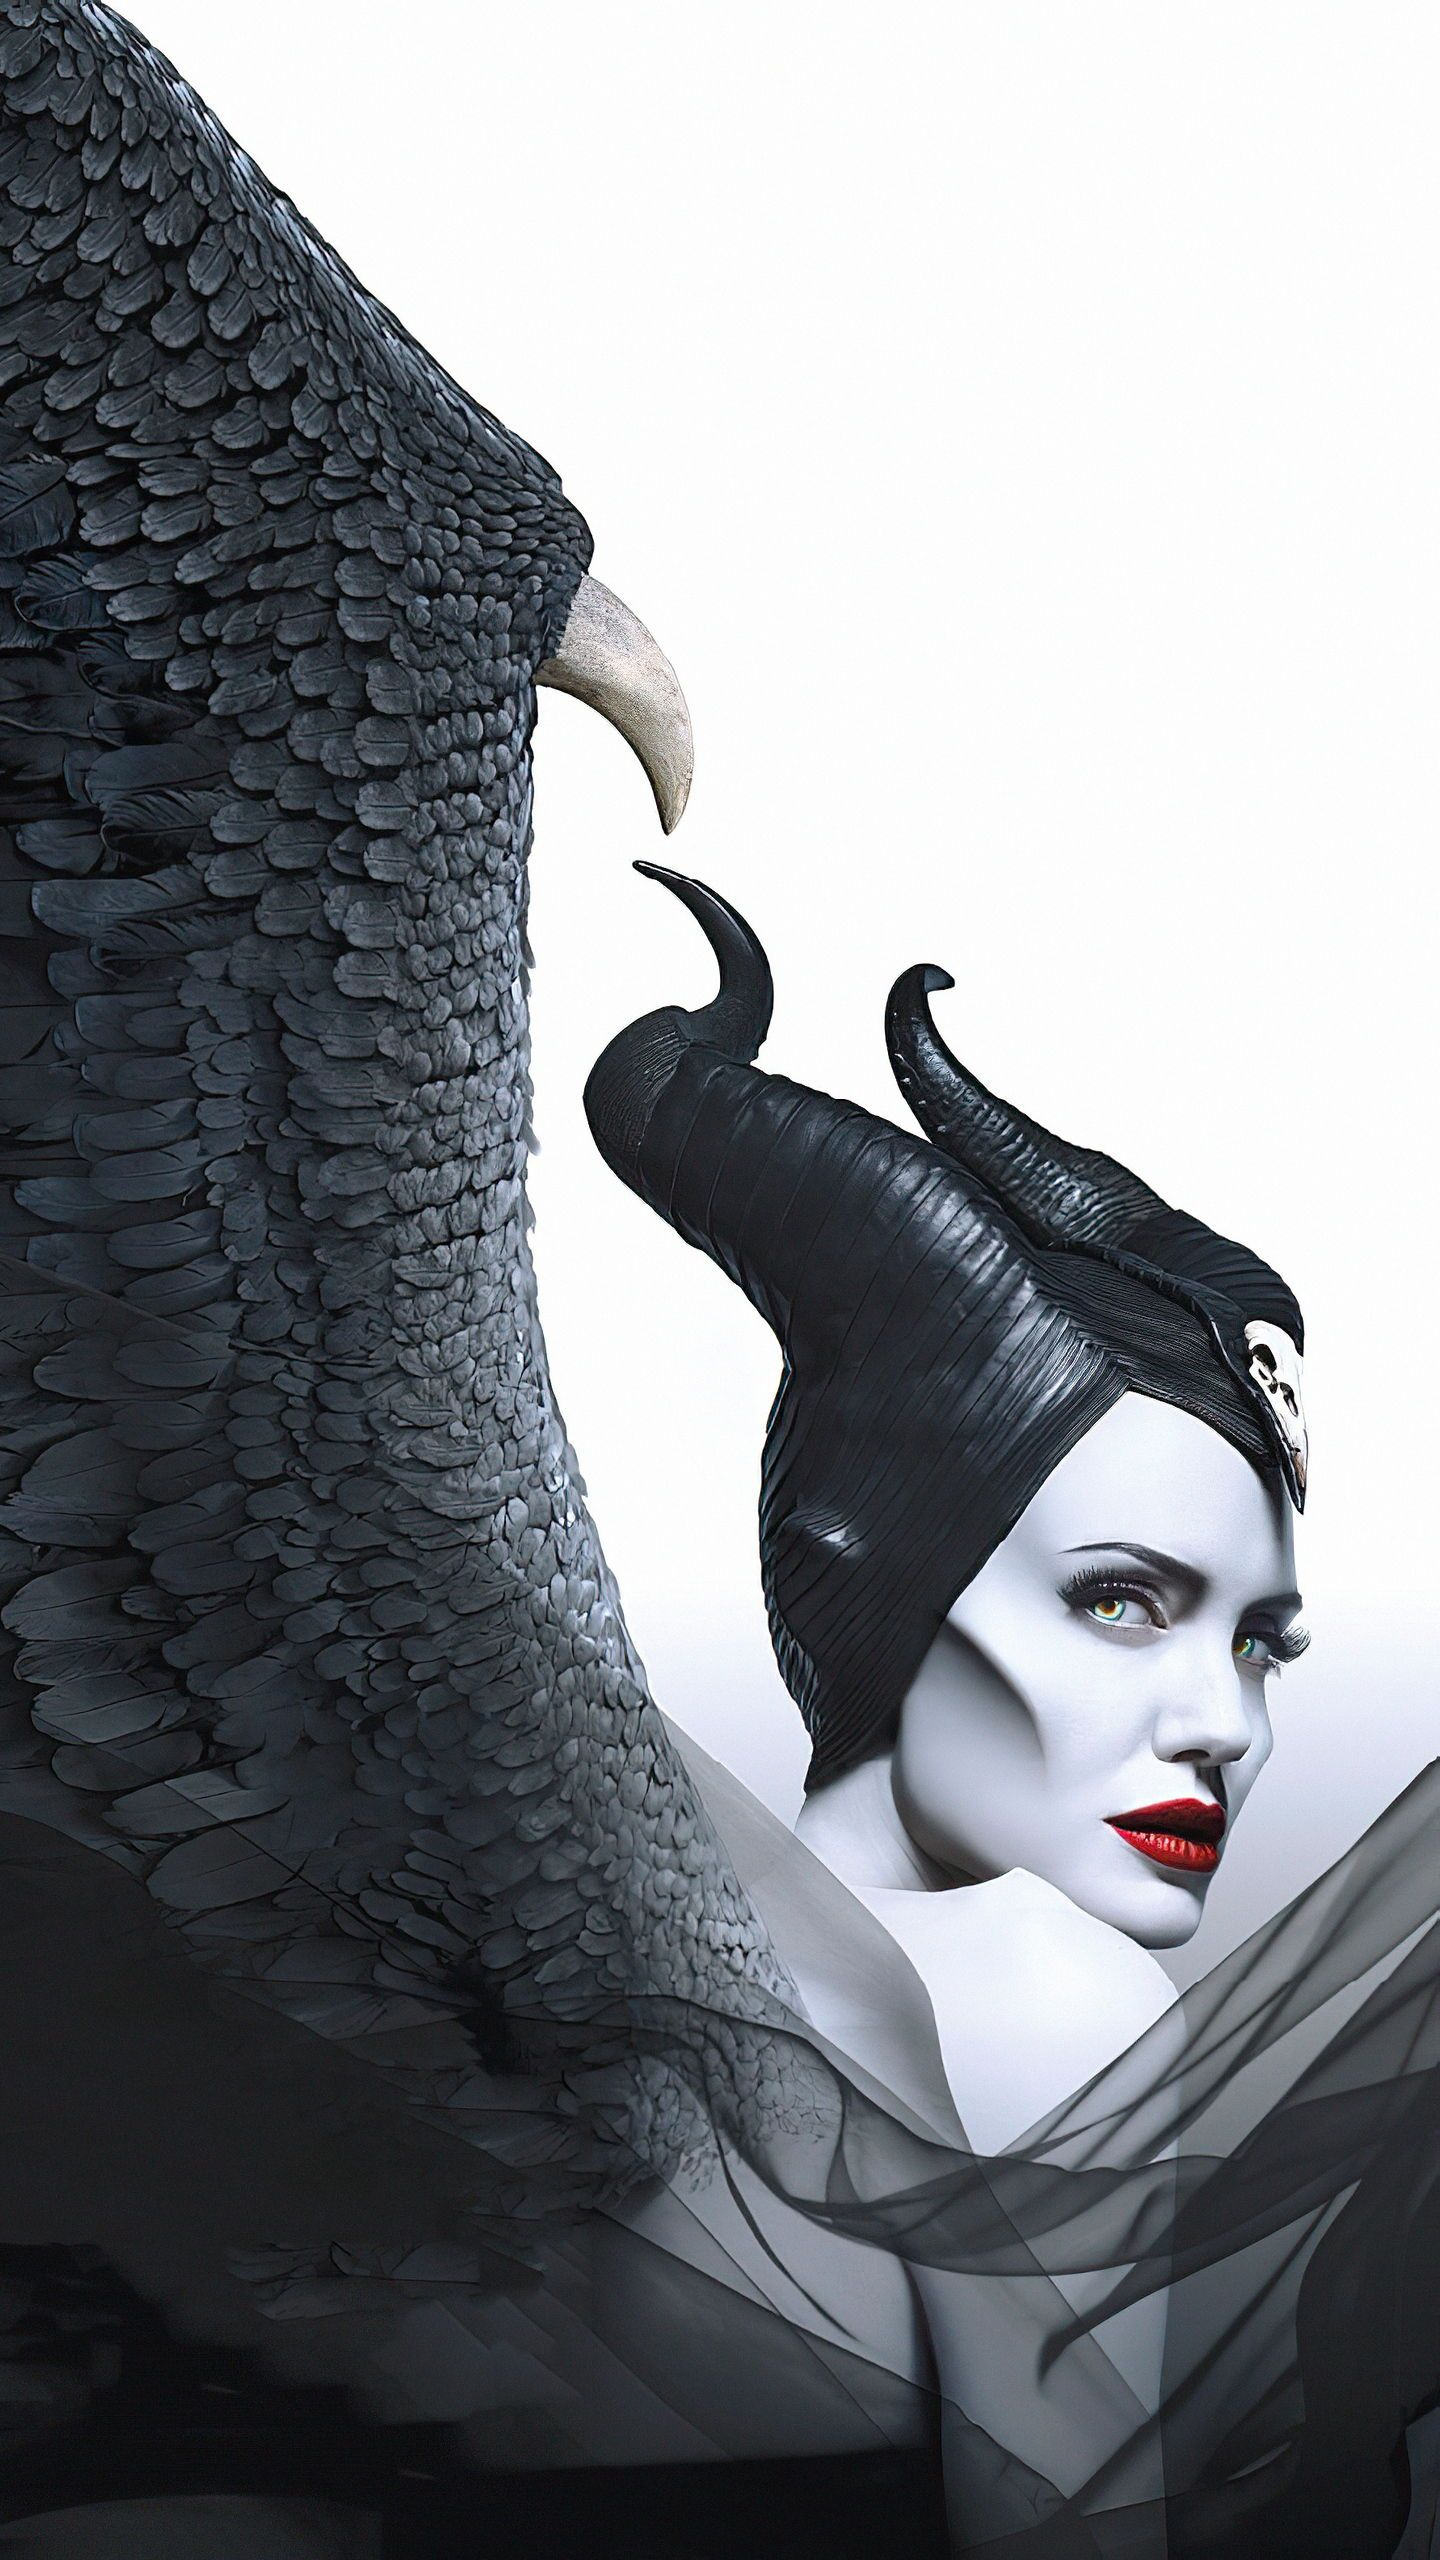 Maleficent Mistress Of Evil Review A Boring Yet Heartwarming Sequel Maleficent Maleficent2 Maleficentmistr Maleficent Disney Maleficent Maleficent Movie